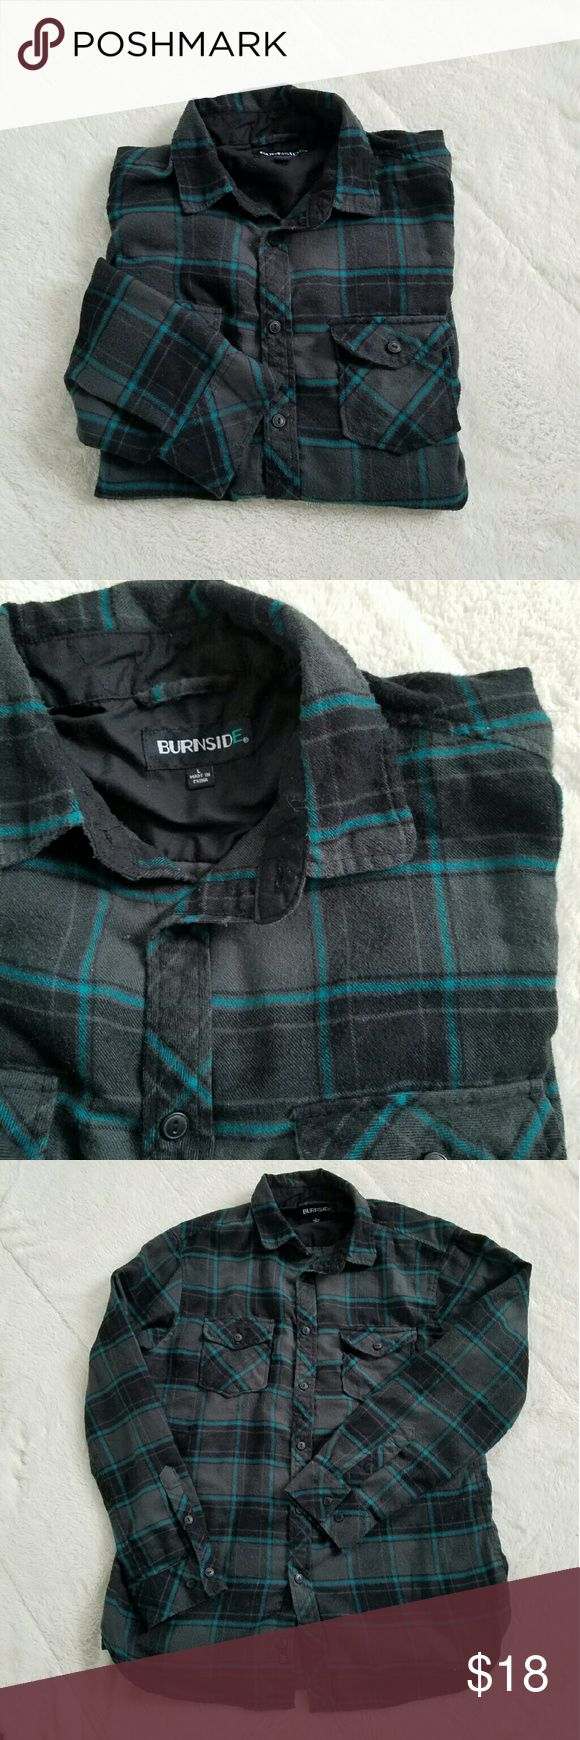 Red flannel unbuttoned   Best images about Flannel Shirt on Pinterest  Flannel style